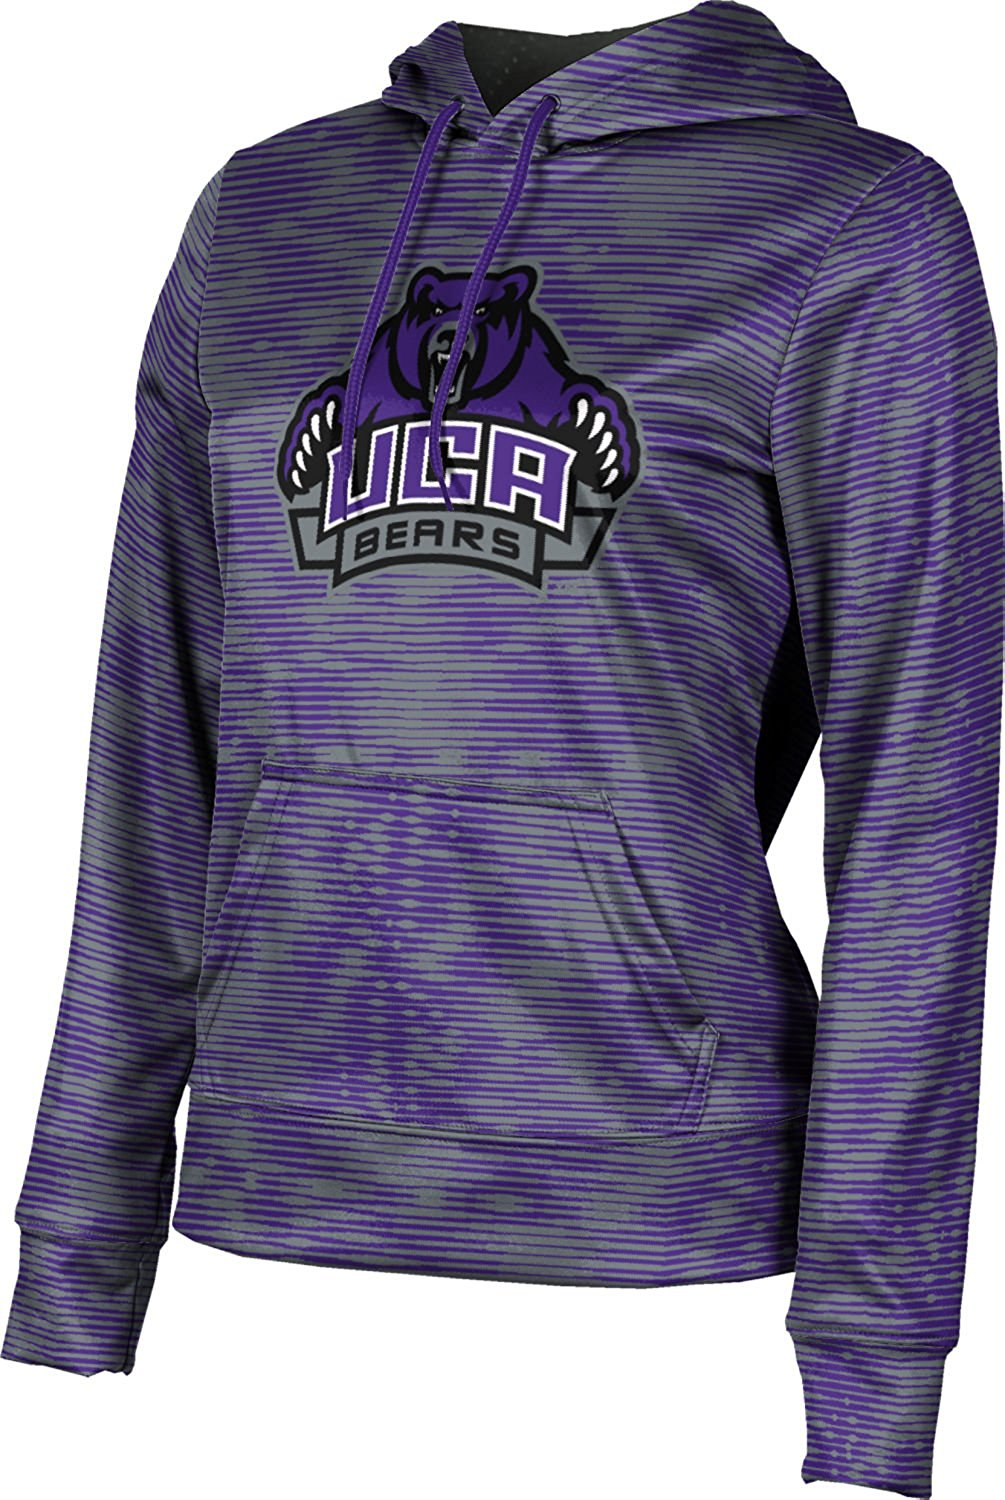 ProSphere University of Central Arkansas Girls' Hoodie Sweatshirt - Velocity